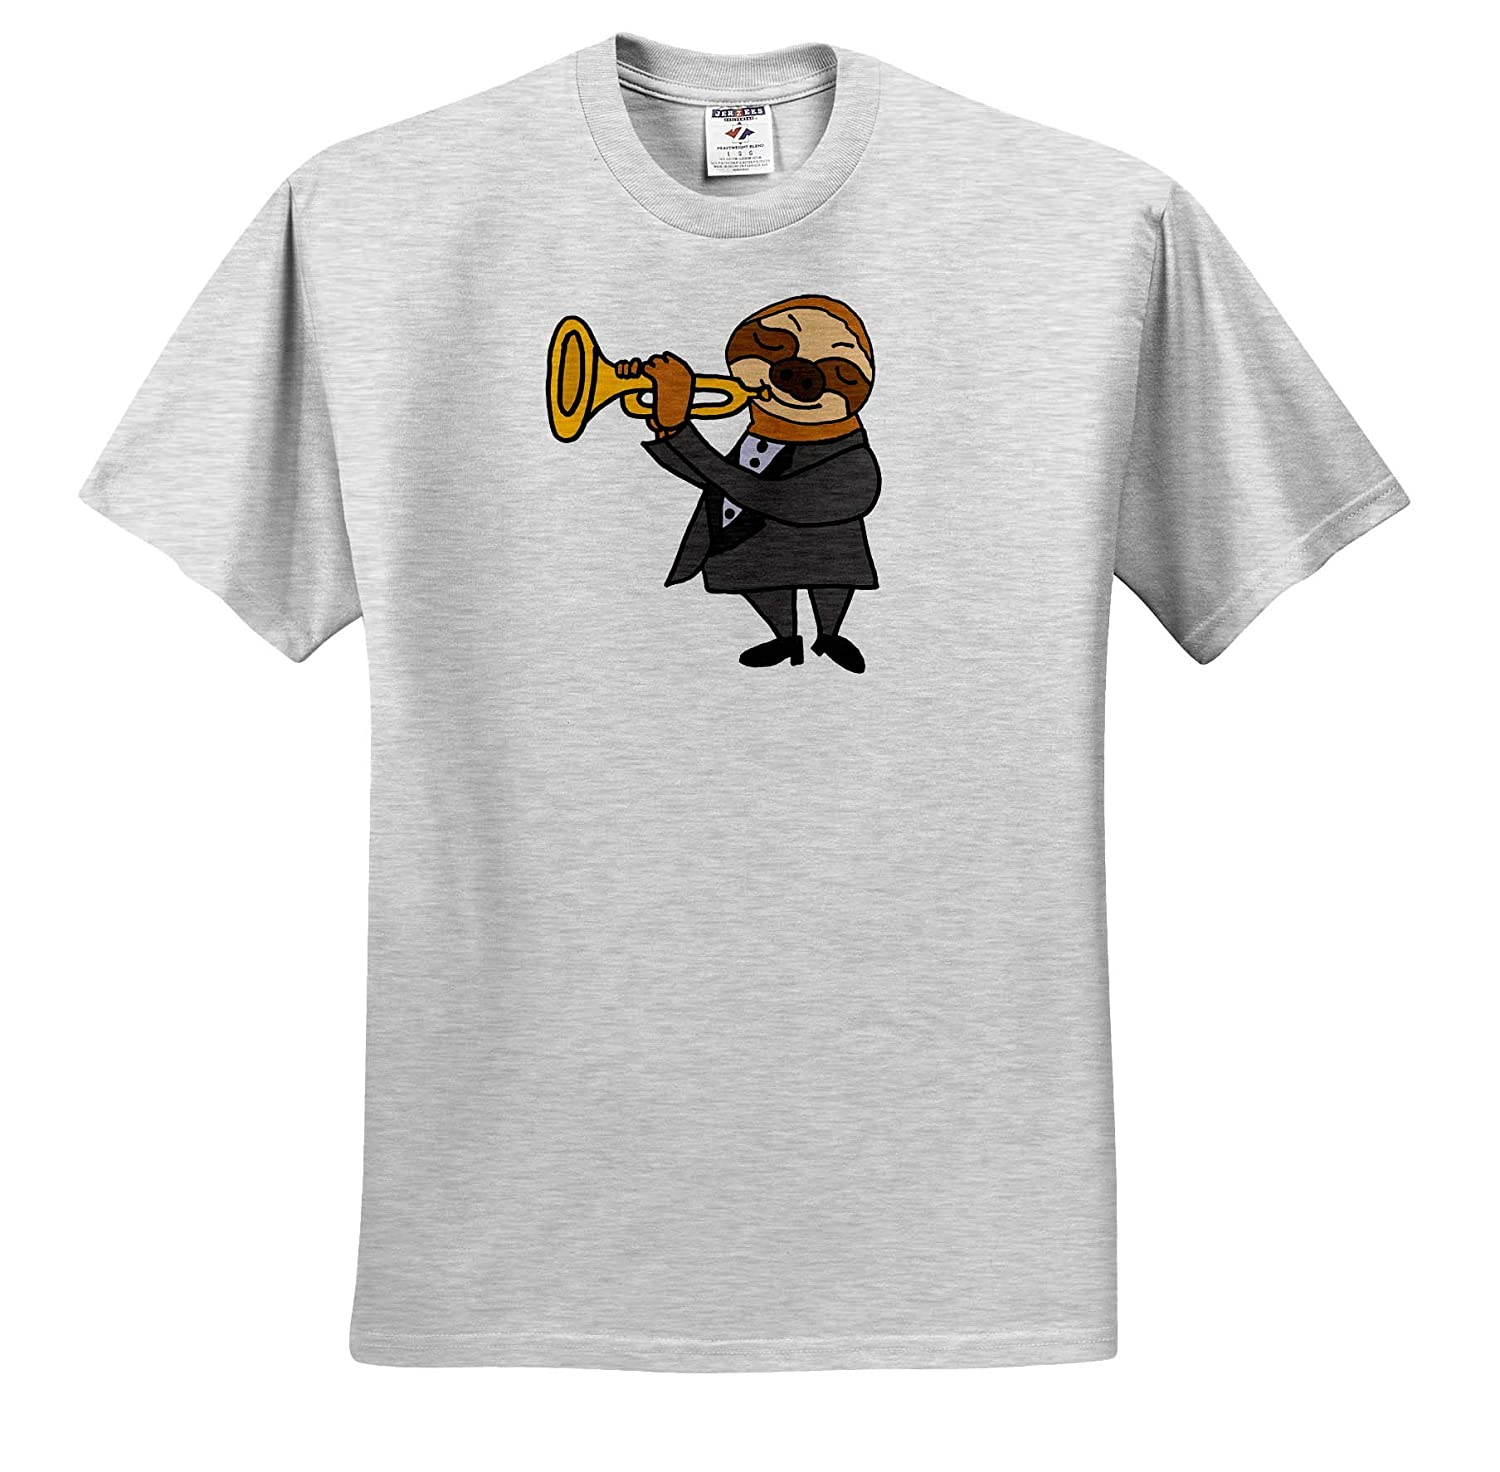 Adult T-Shirt XL Music 3dRose All Smiles Art Funny Cute Sloth Playing Trumpet Cartoon ts/_309629